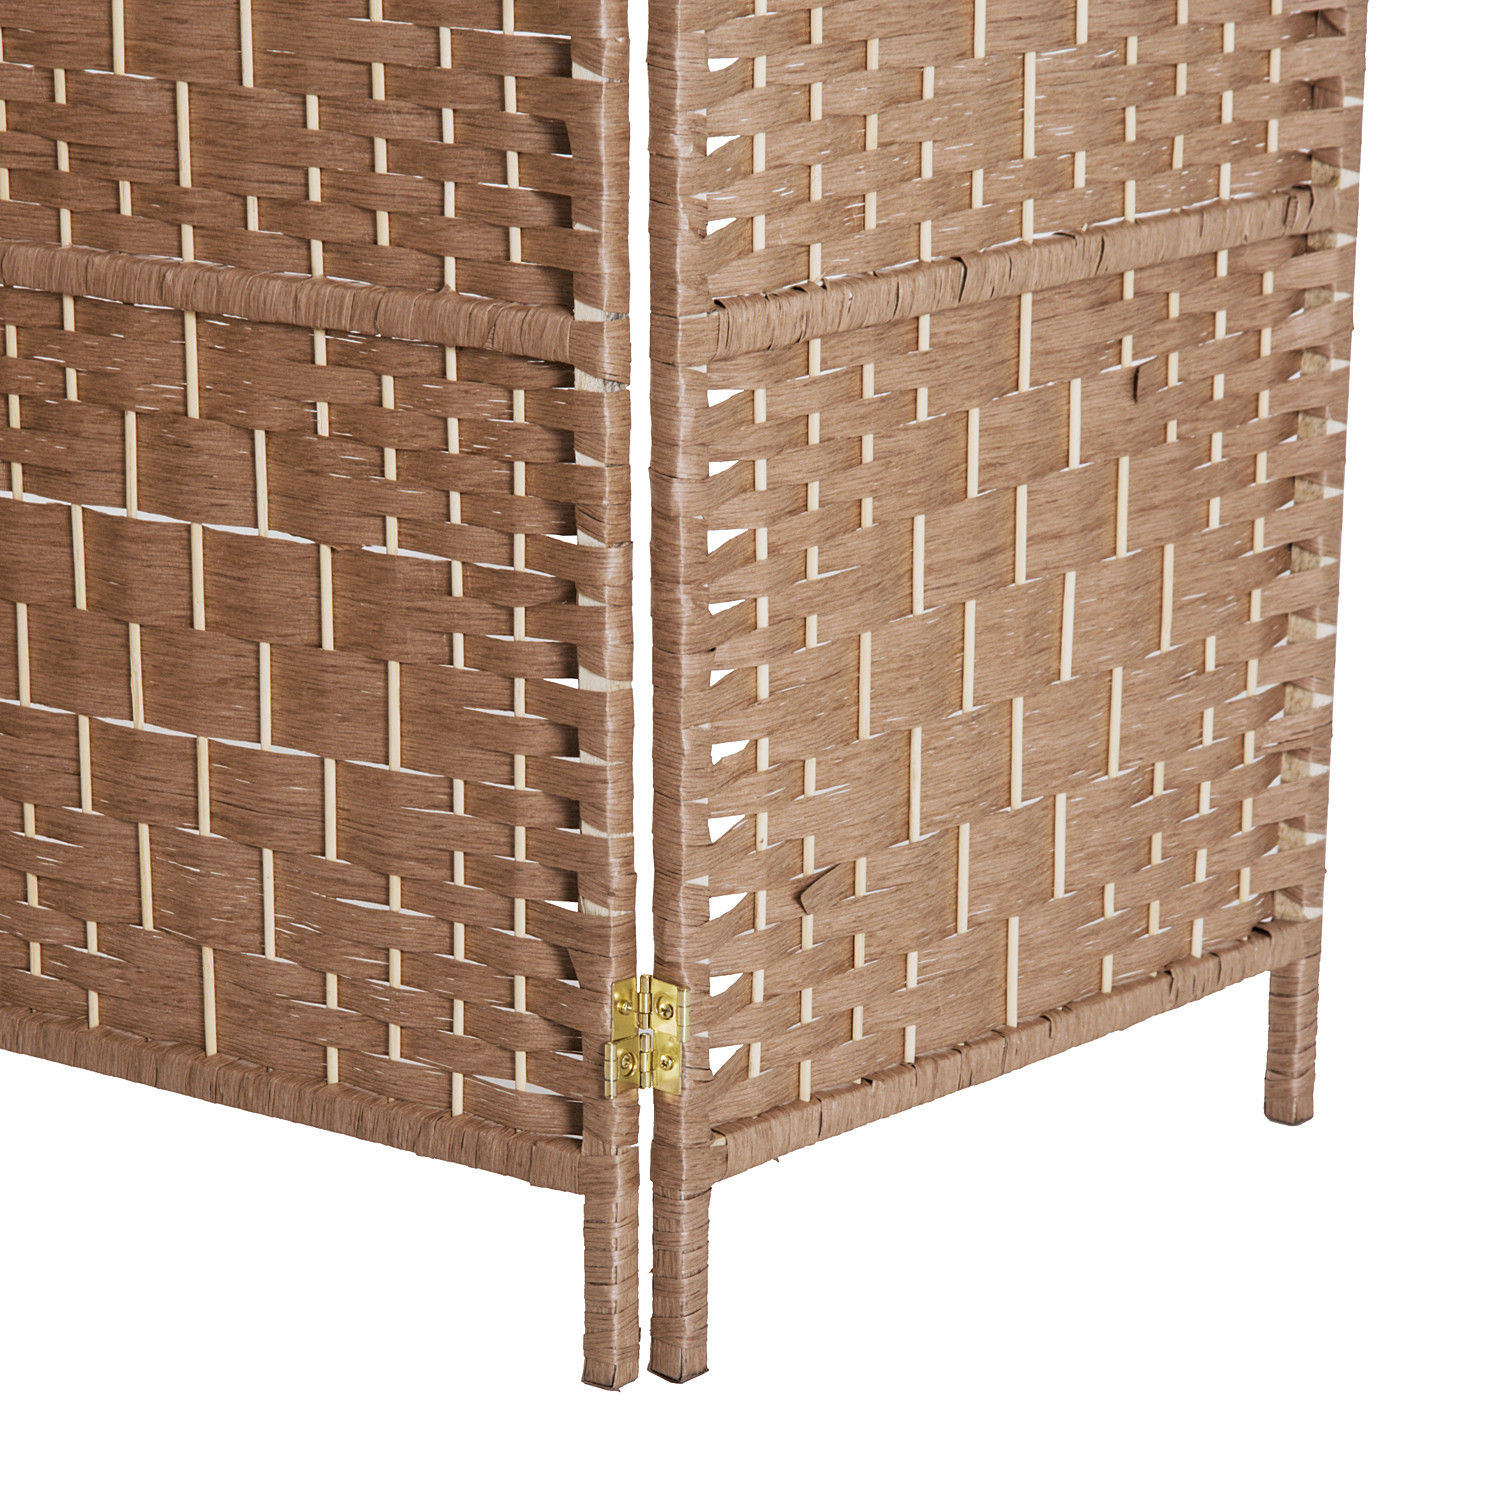 6 Panel Folding Room Divider Resin Wicker Privacy Screen Home Indoor ...